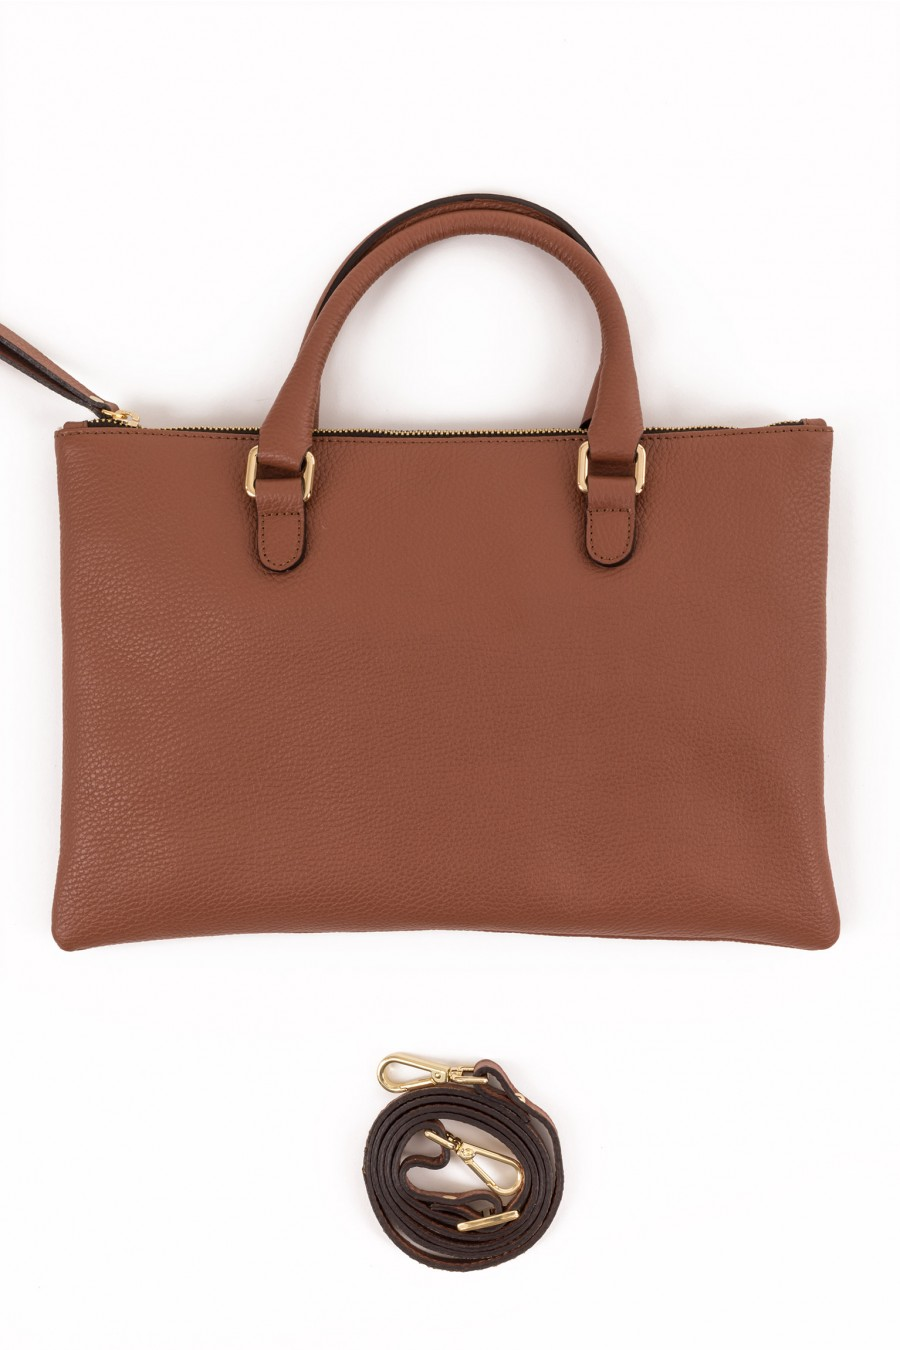 Leather brown flat purse